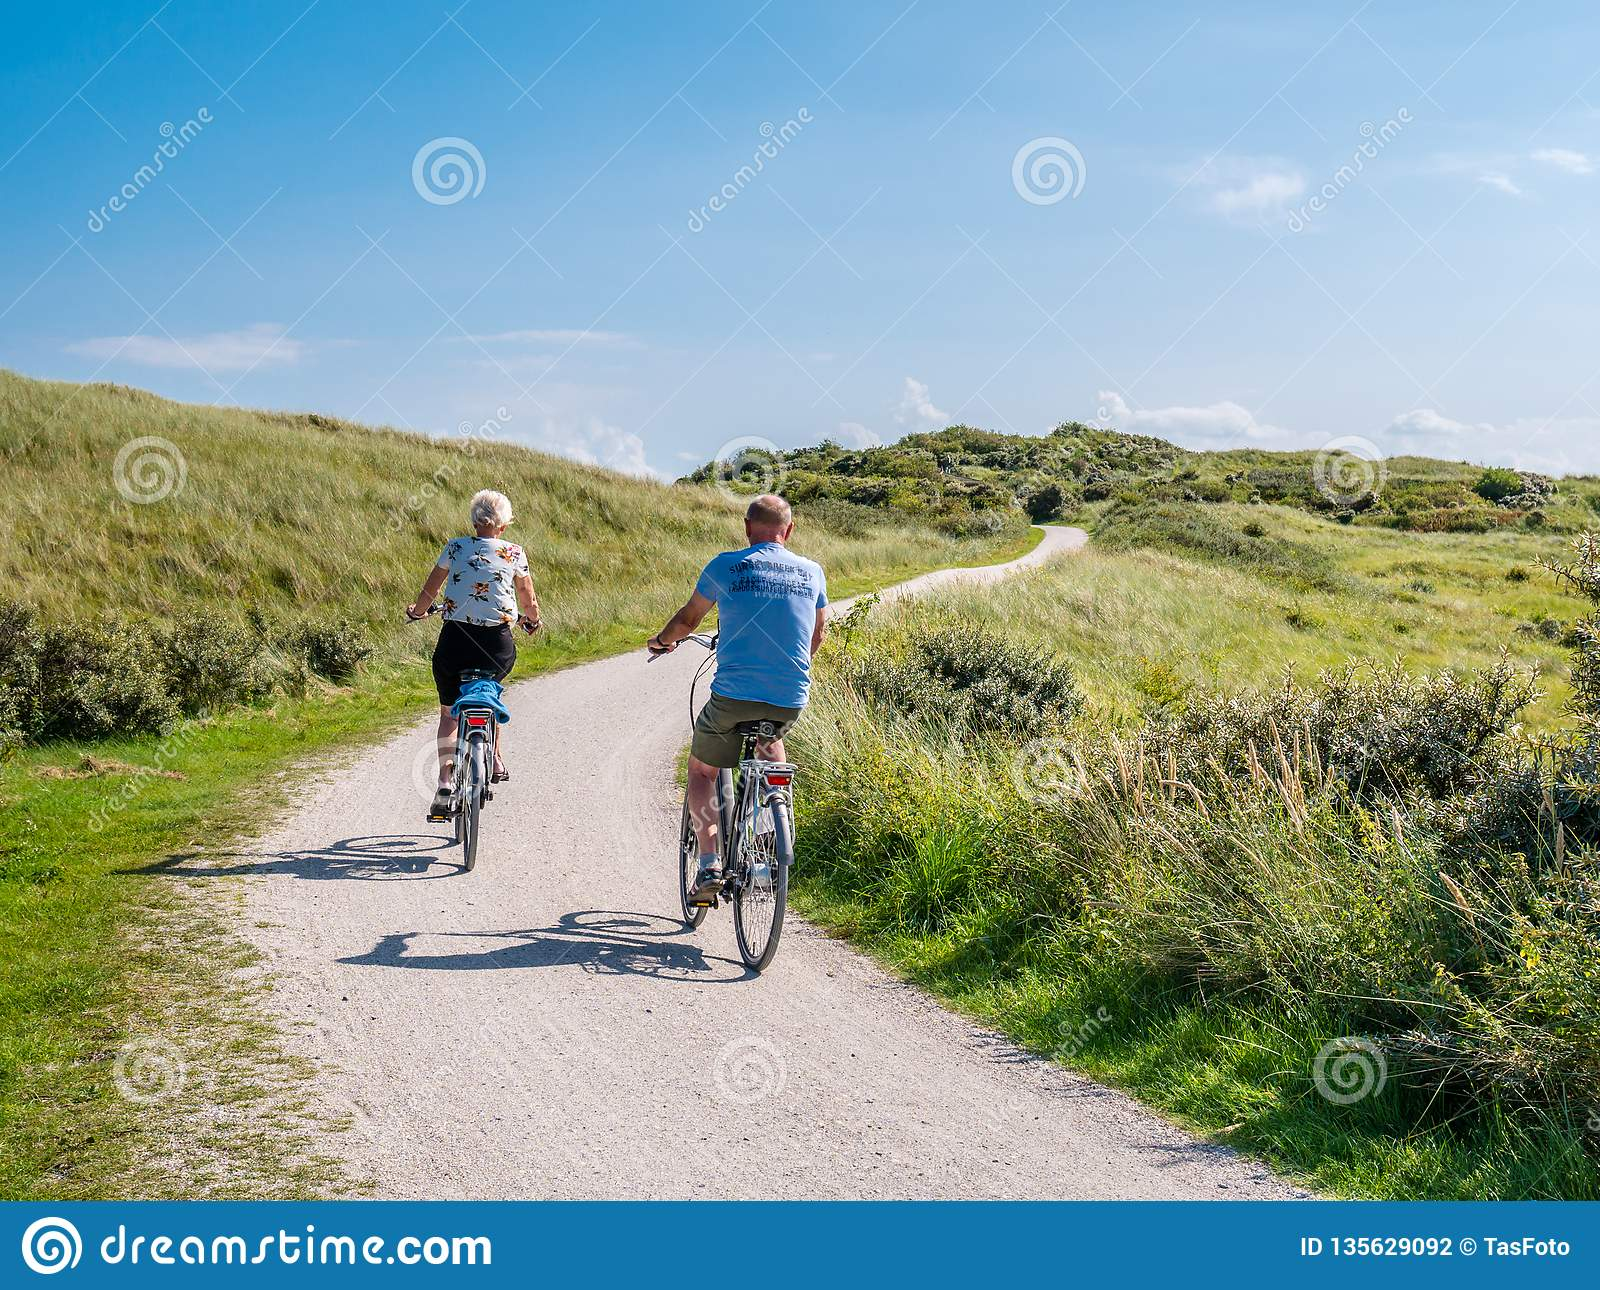 Rear view of people riding bikes on bicycle path in dunes of nature reserve Het Oerd on West Frisian island Ameland, Netherlands